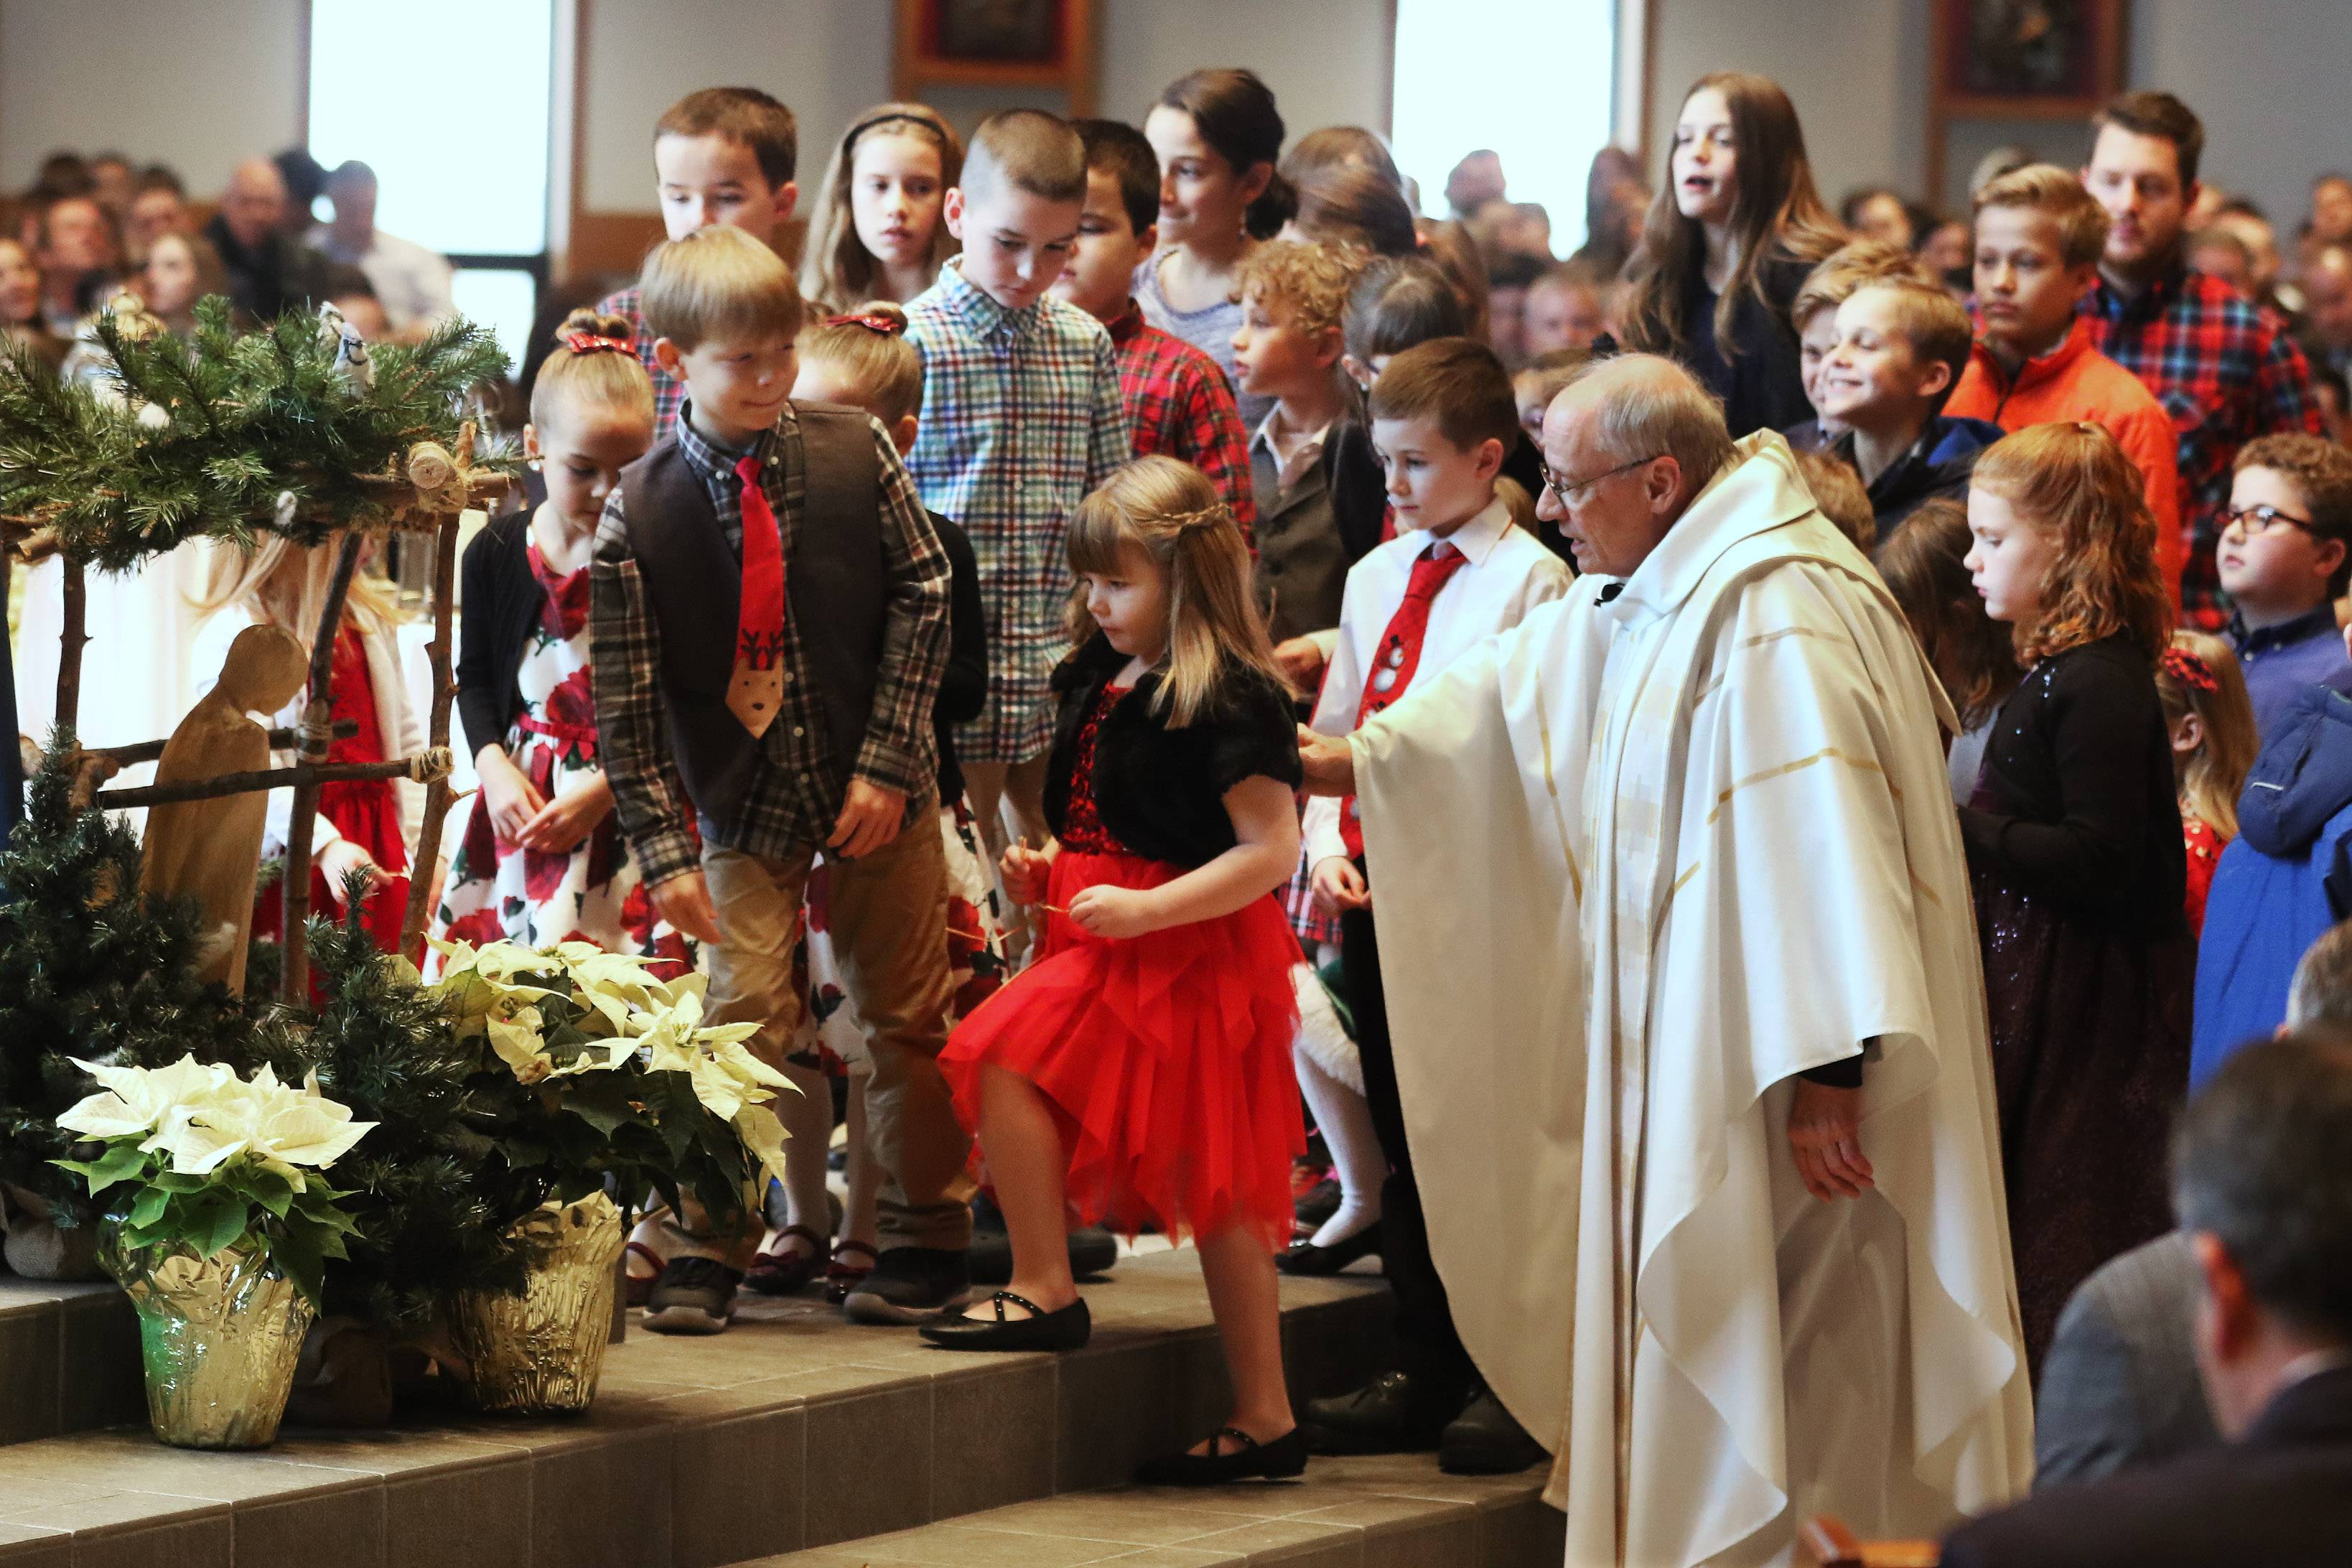 Father Joe Curtis directs children to come up to the Nativity scene and place straw around the baby Jesus before Christmas mass Sunday at St. Mary of Vernon Catholic Church in Indian Creek.